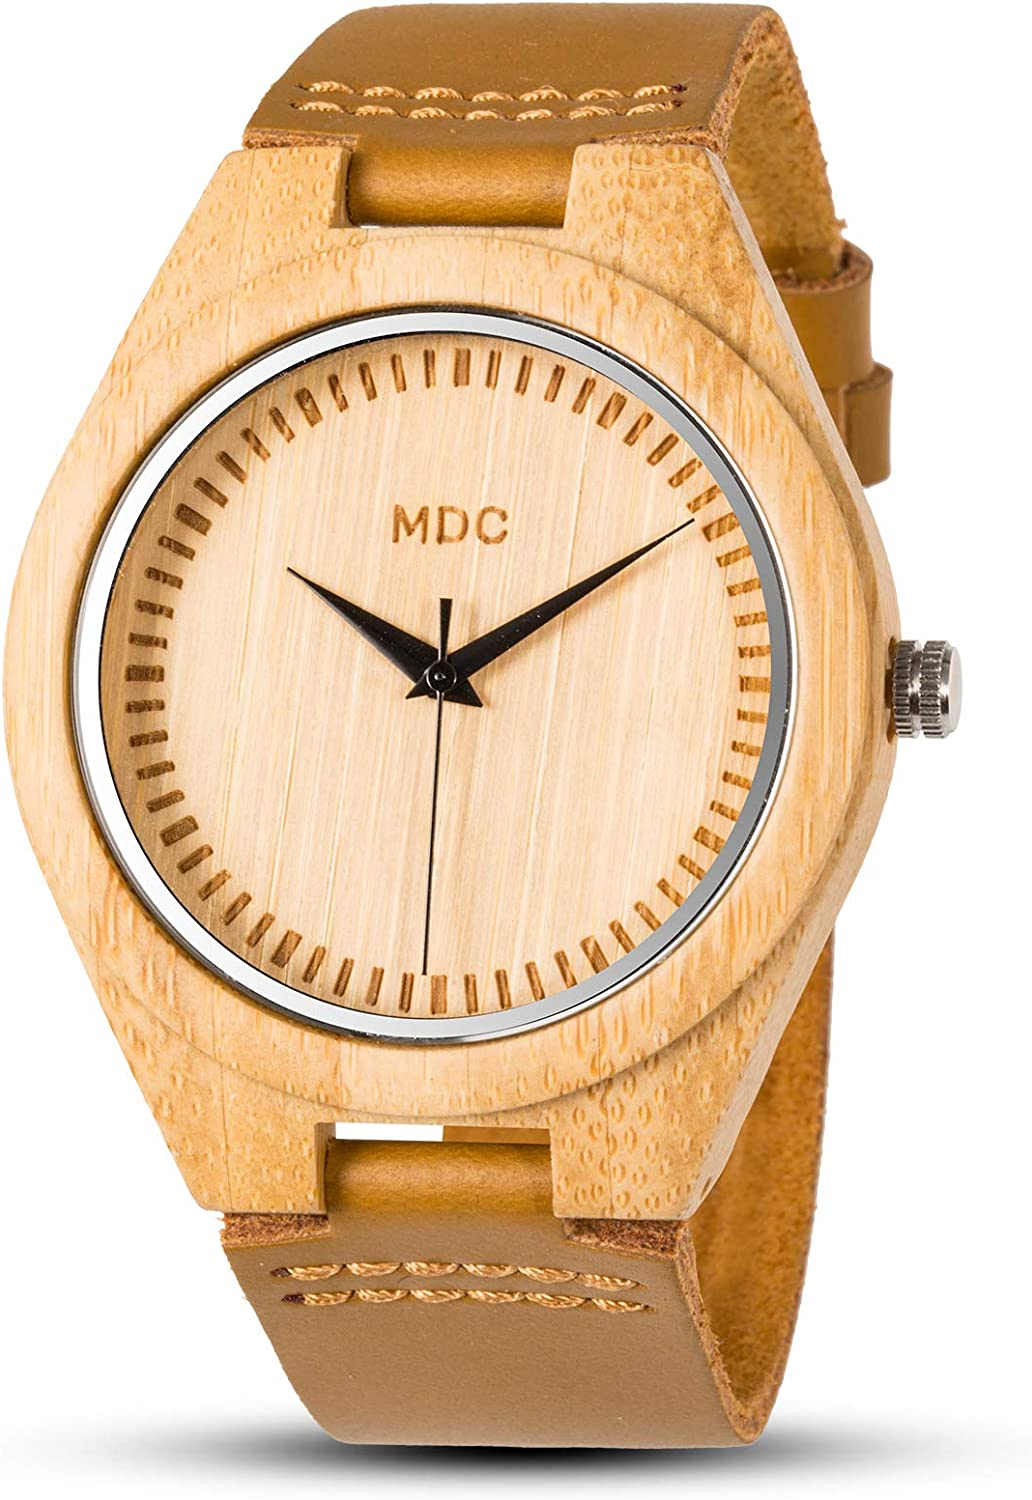 MDC Bamboo Wooden Watch Minimalist Light Weight Casual Genuine Leather Band